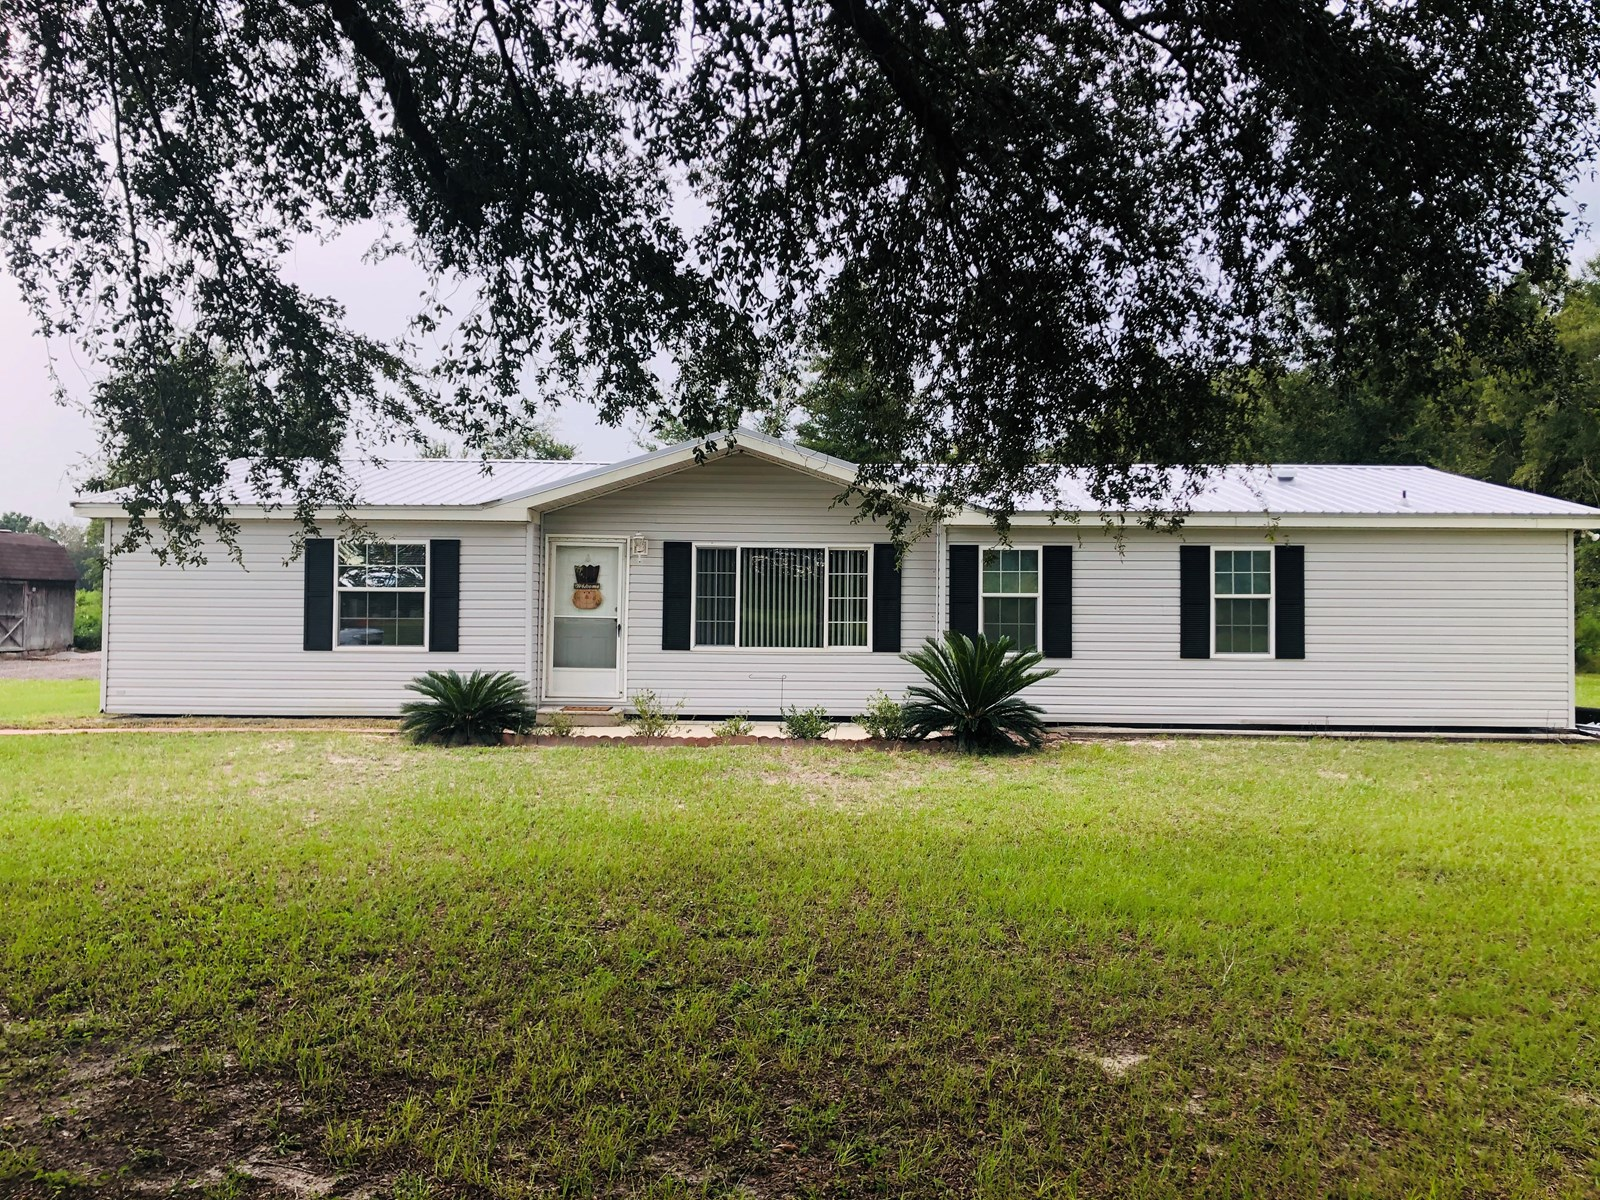 3/2 Mobile home on 4.69 acres